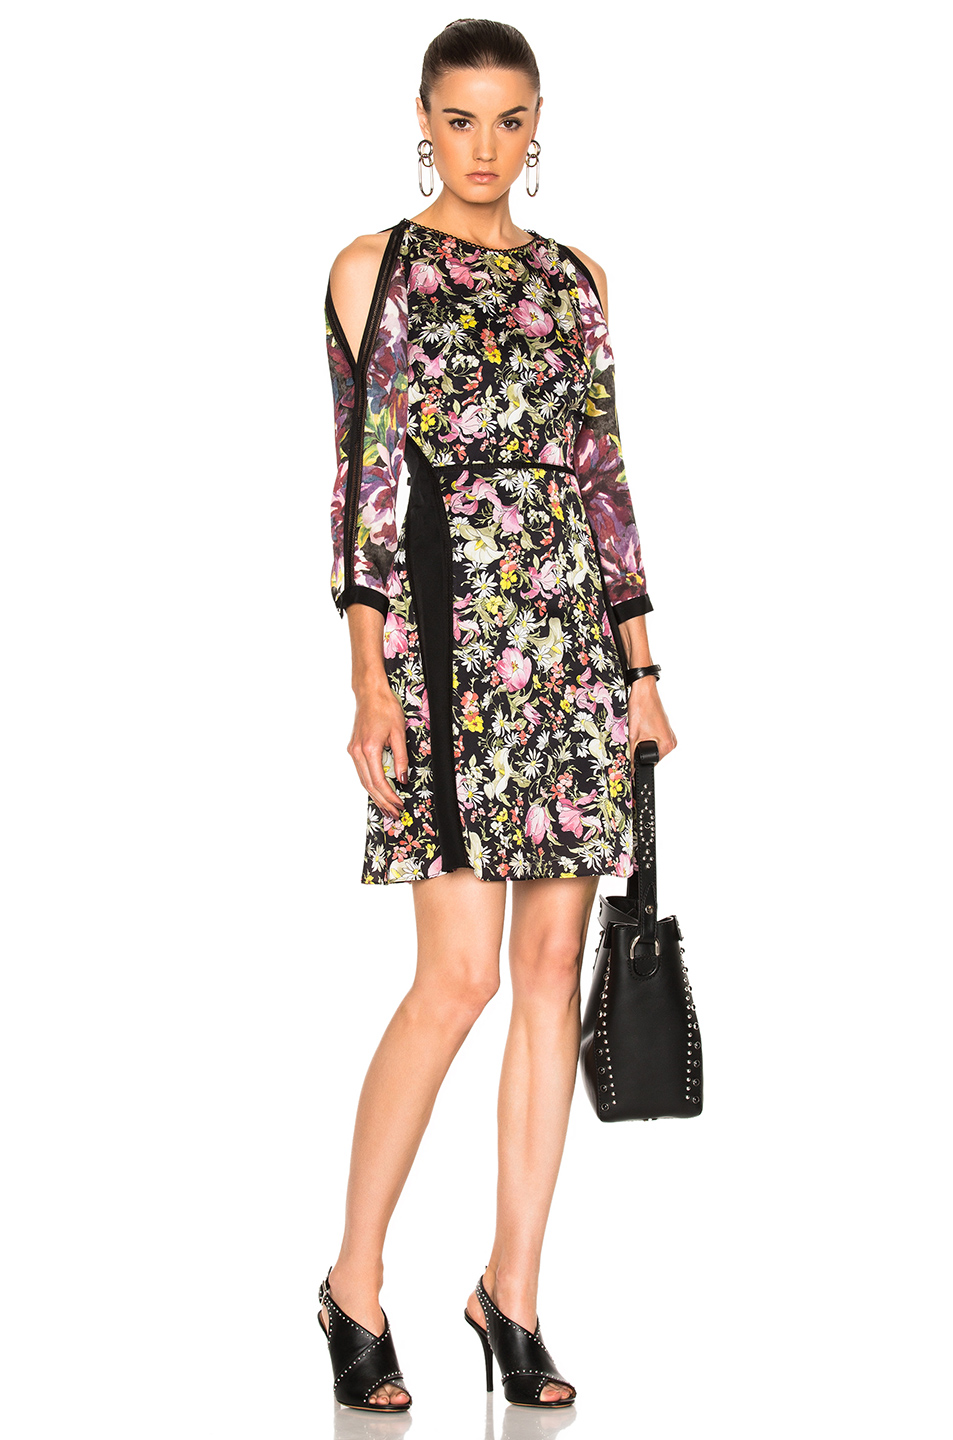 3.1 phillip lim Meadow Flower Cold Shoulder Dress in Black,Floral,Pink,Yellow